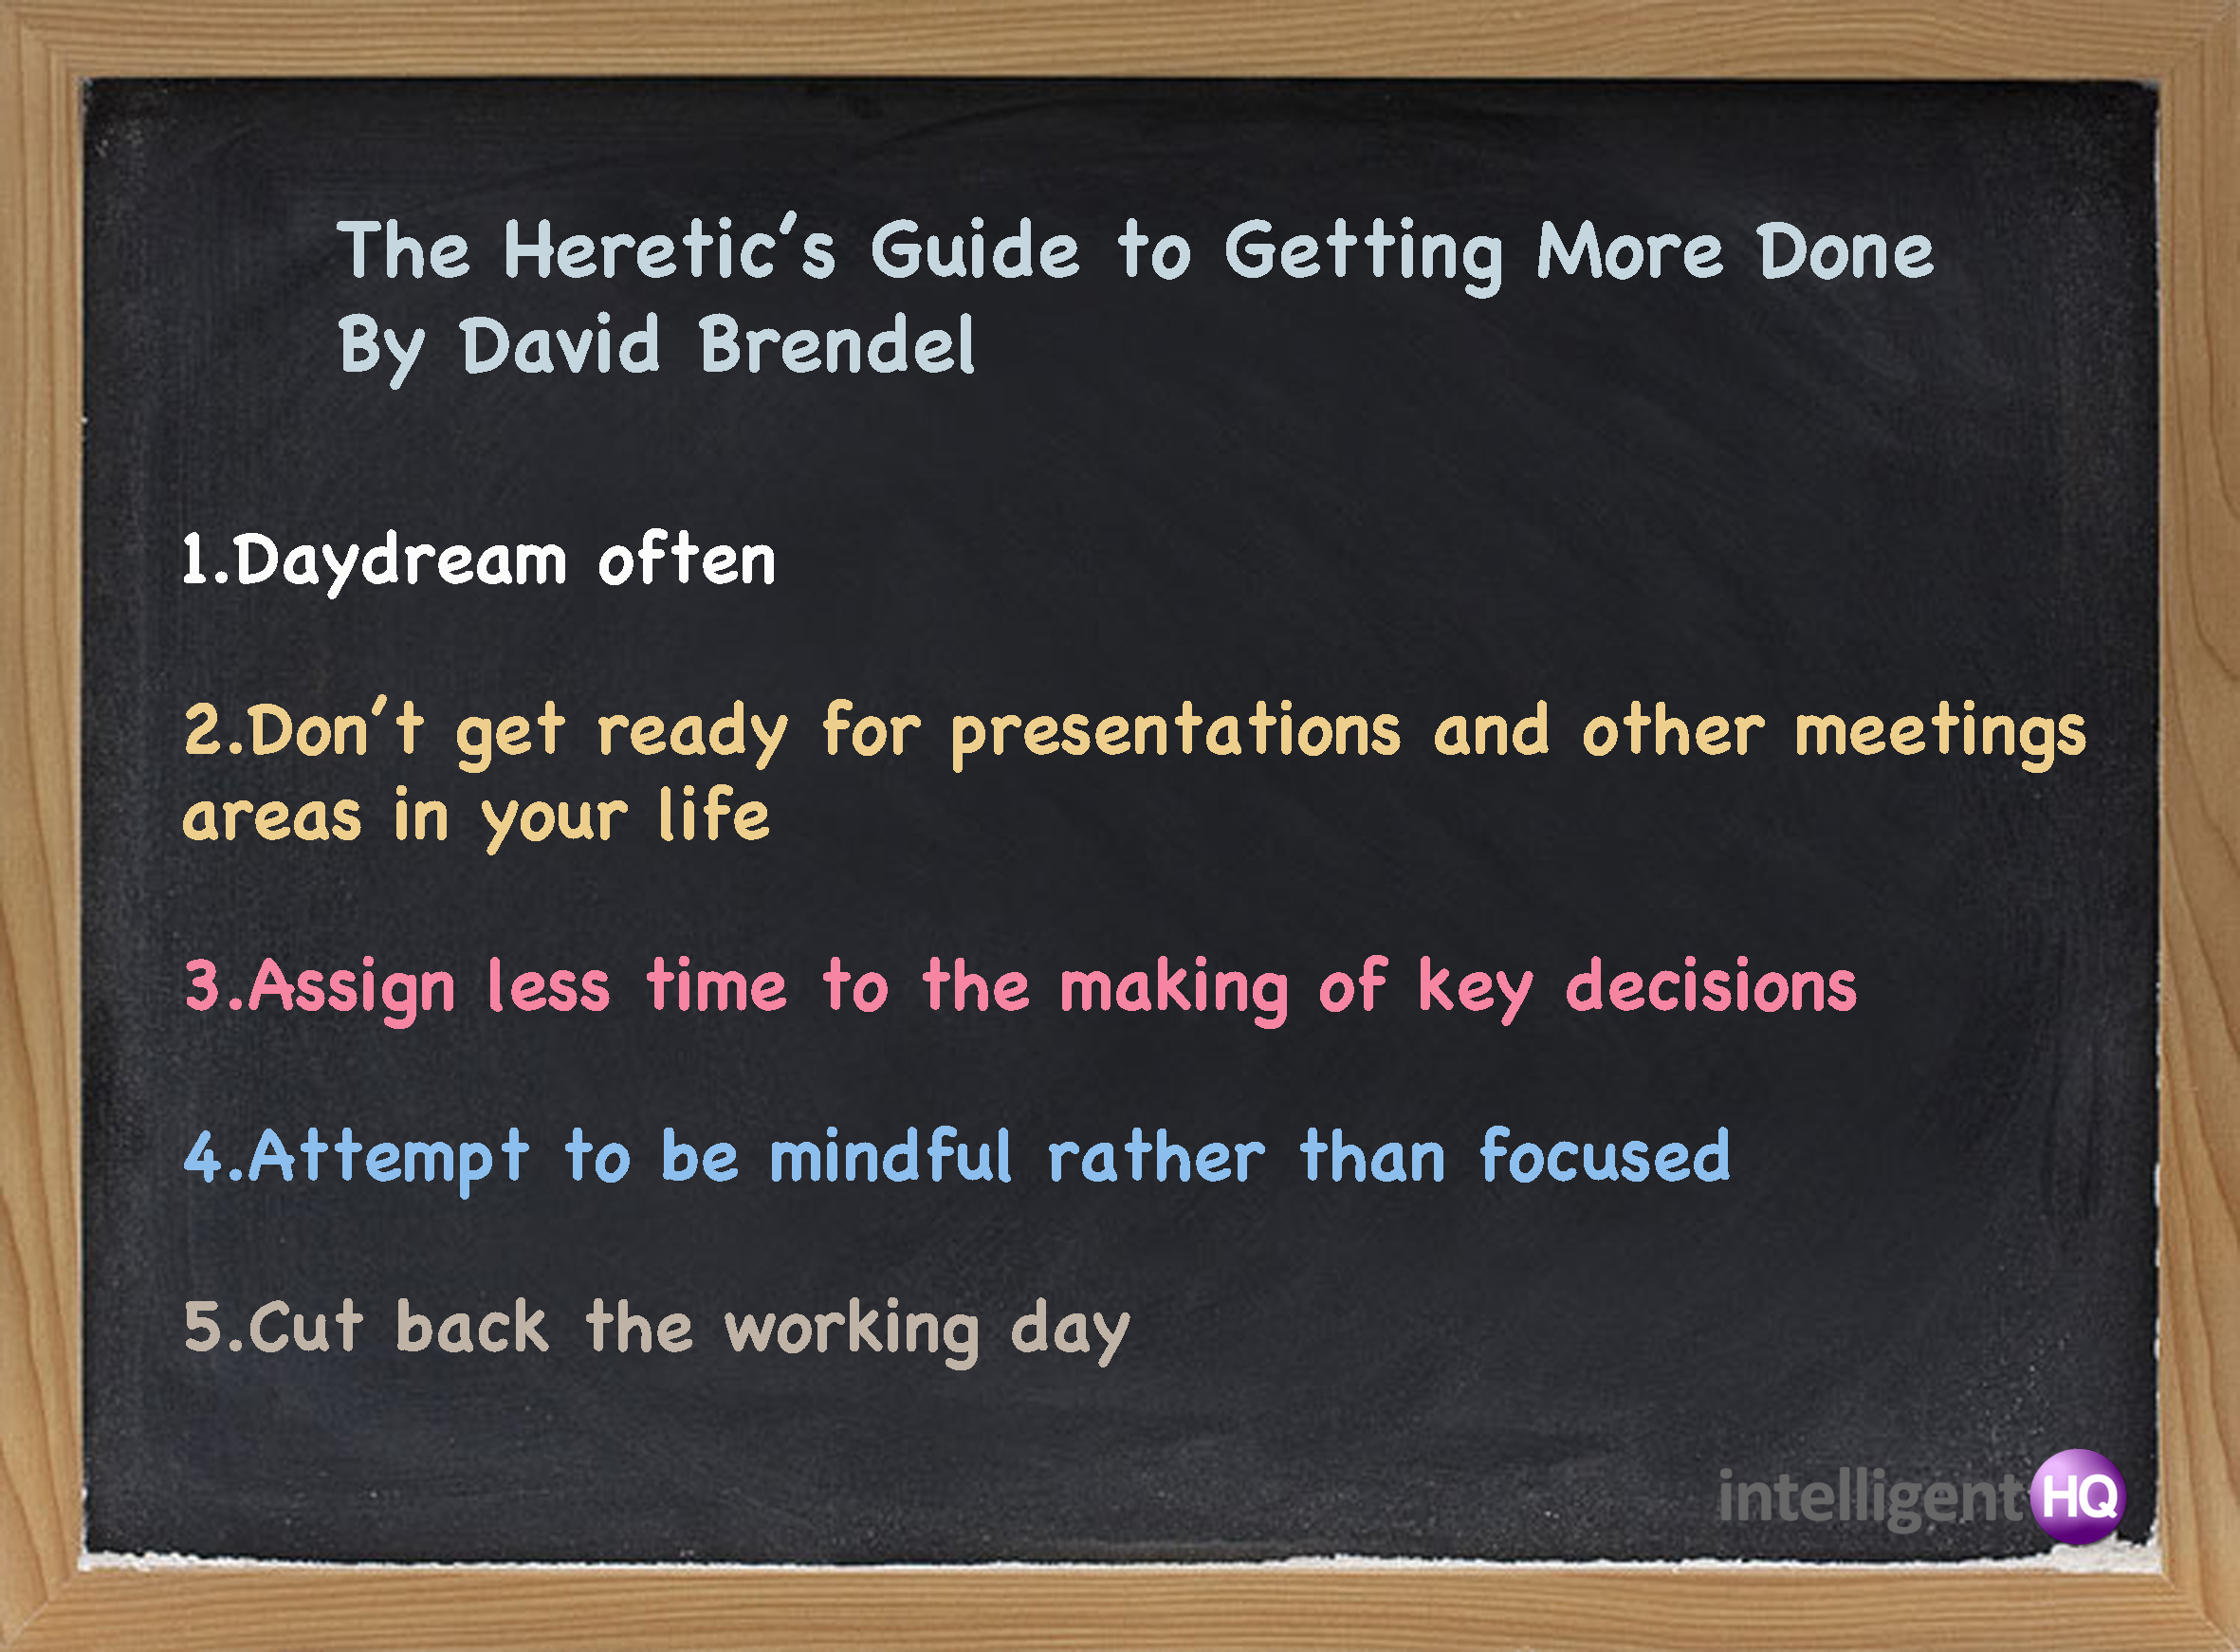 The Heretic's Guide to Getting More Done